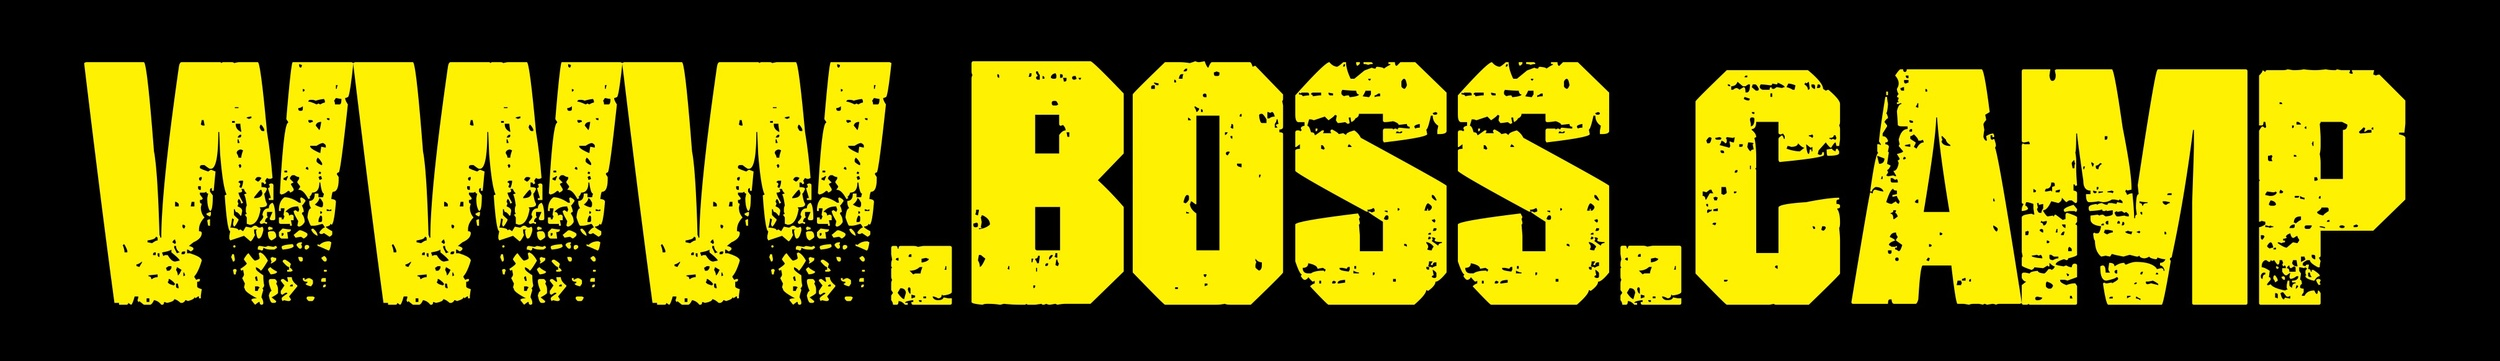 Find out how to get improved employee performance in just an hour a week with www.boss.camp Jpeg